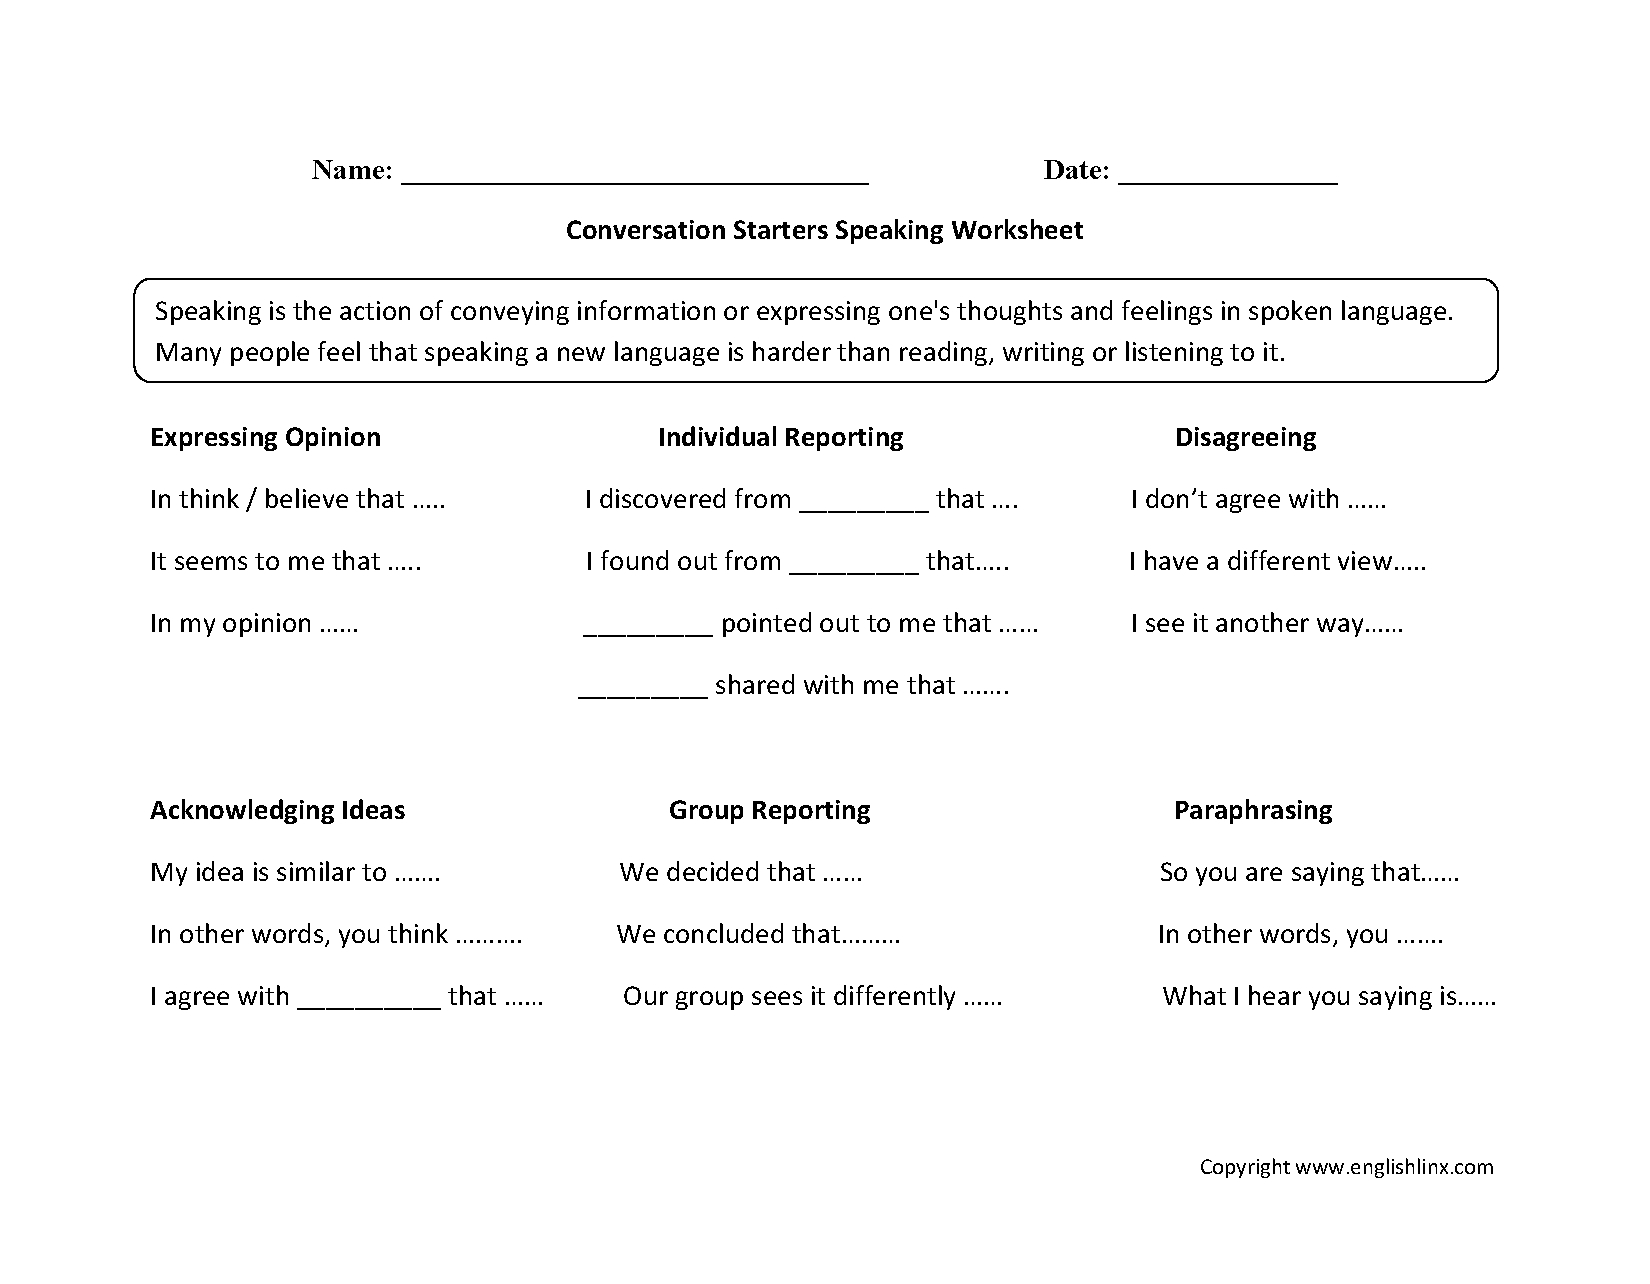 Englishlinx | Speaking Worksheets - Free Printable English Conversation Worksheets